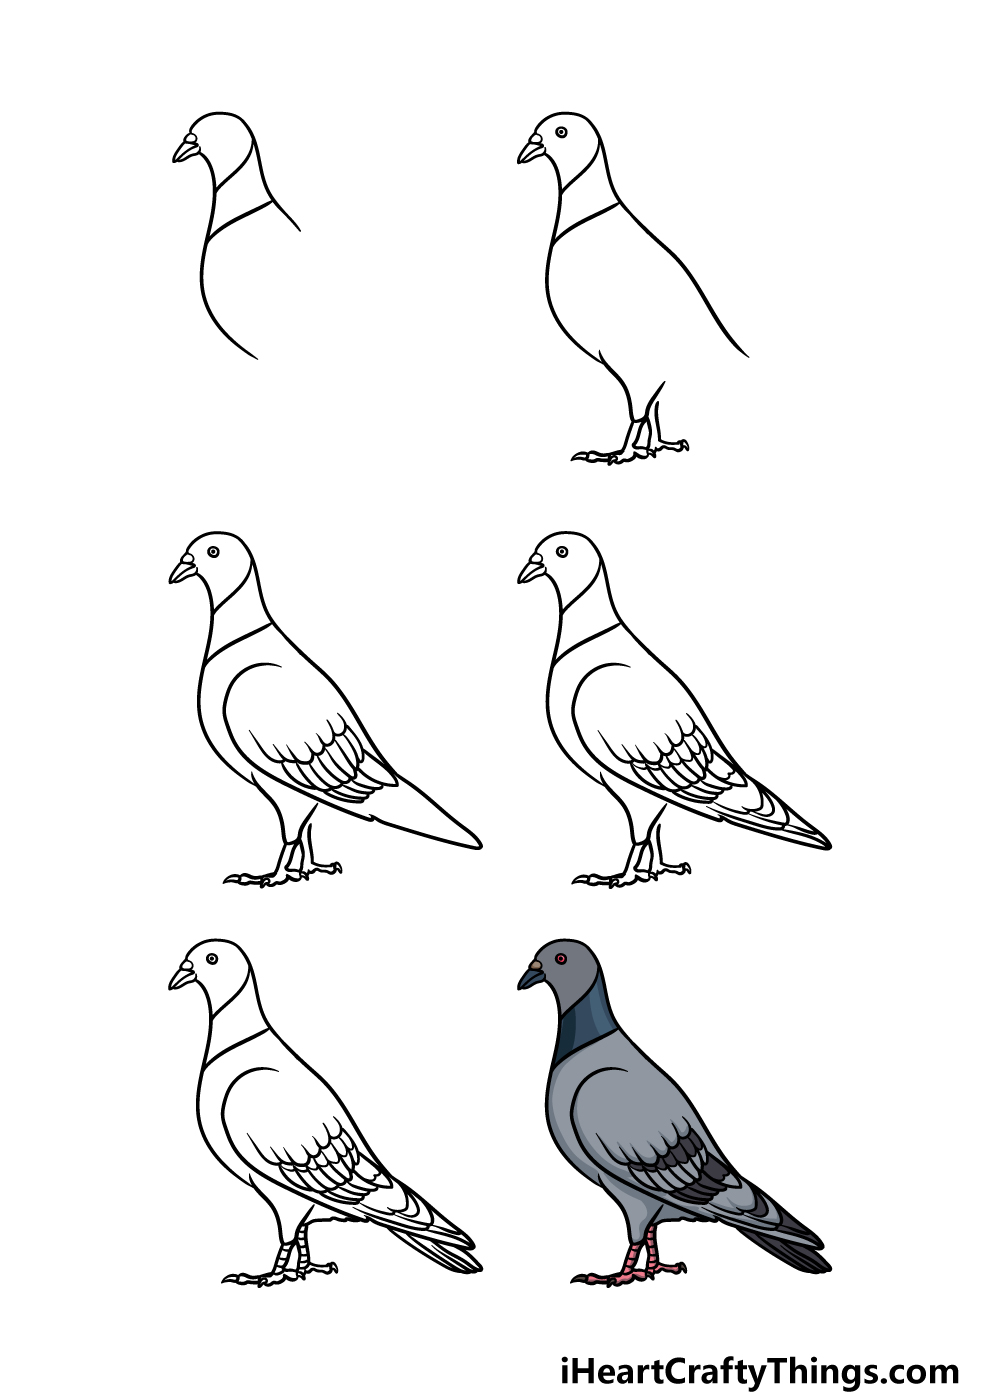 how to draw a pigeon in 6 steps